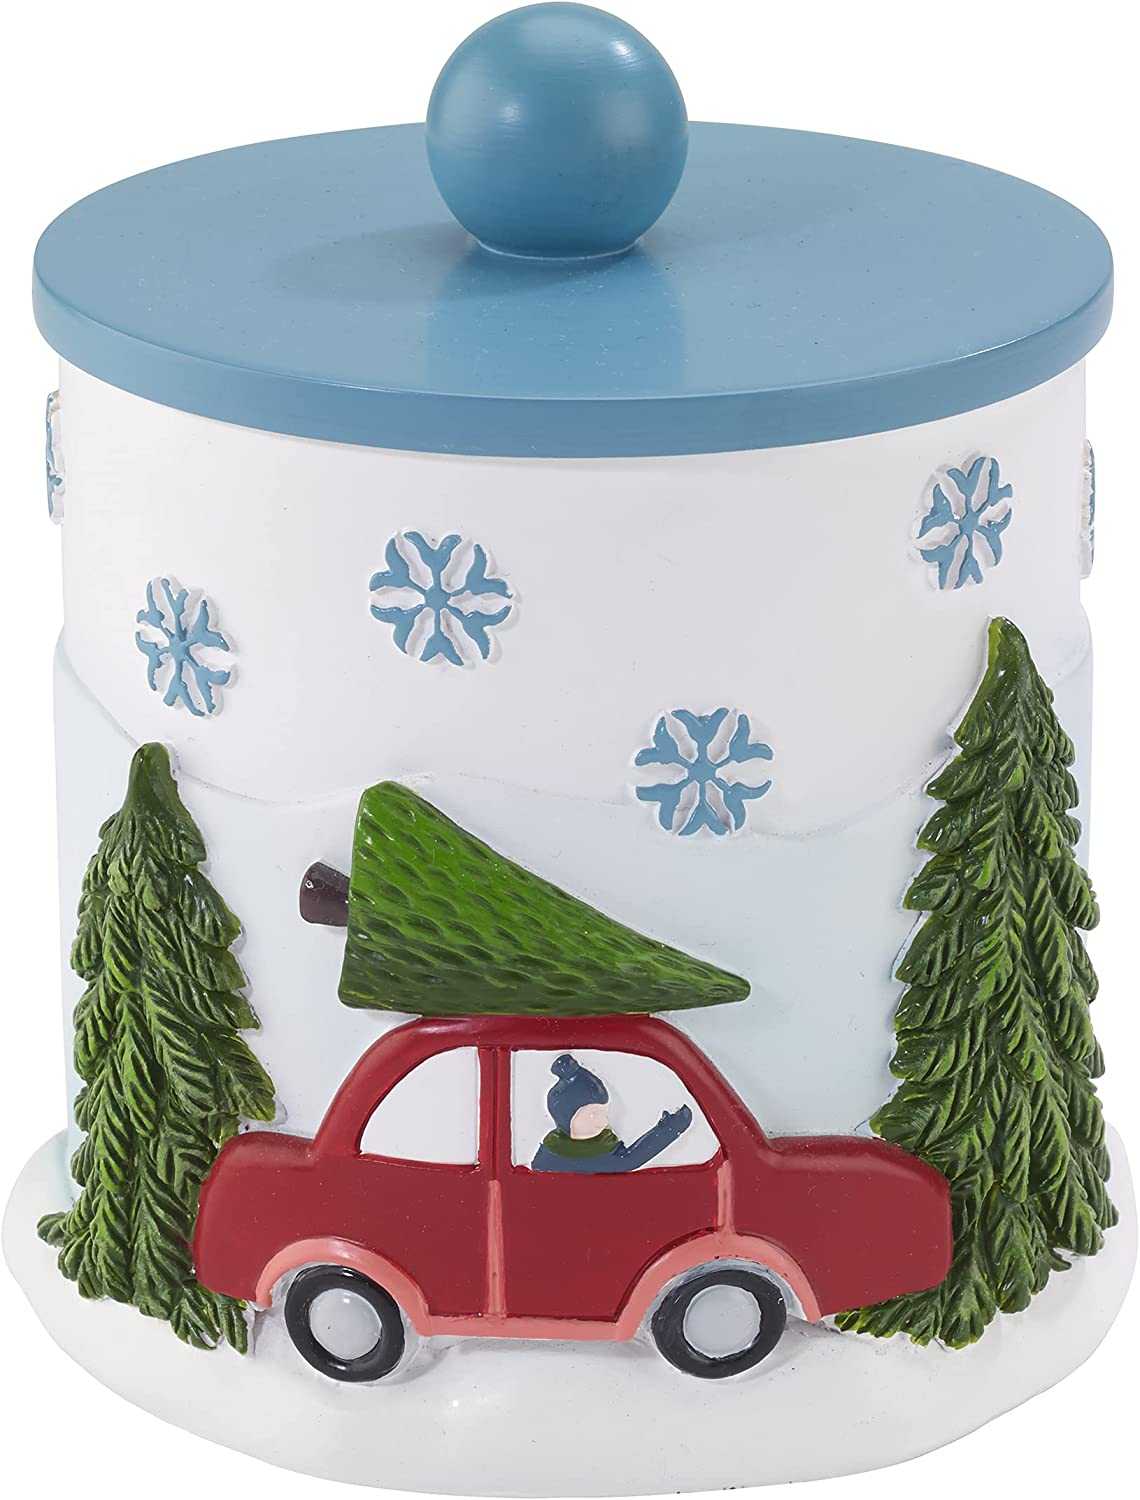 Avanti Nippon regular agency Linens Home for The Holidays Jar Genuine Collection Decorative